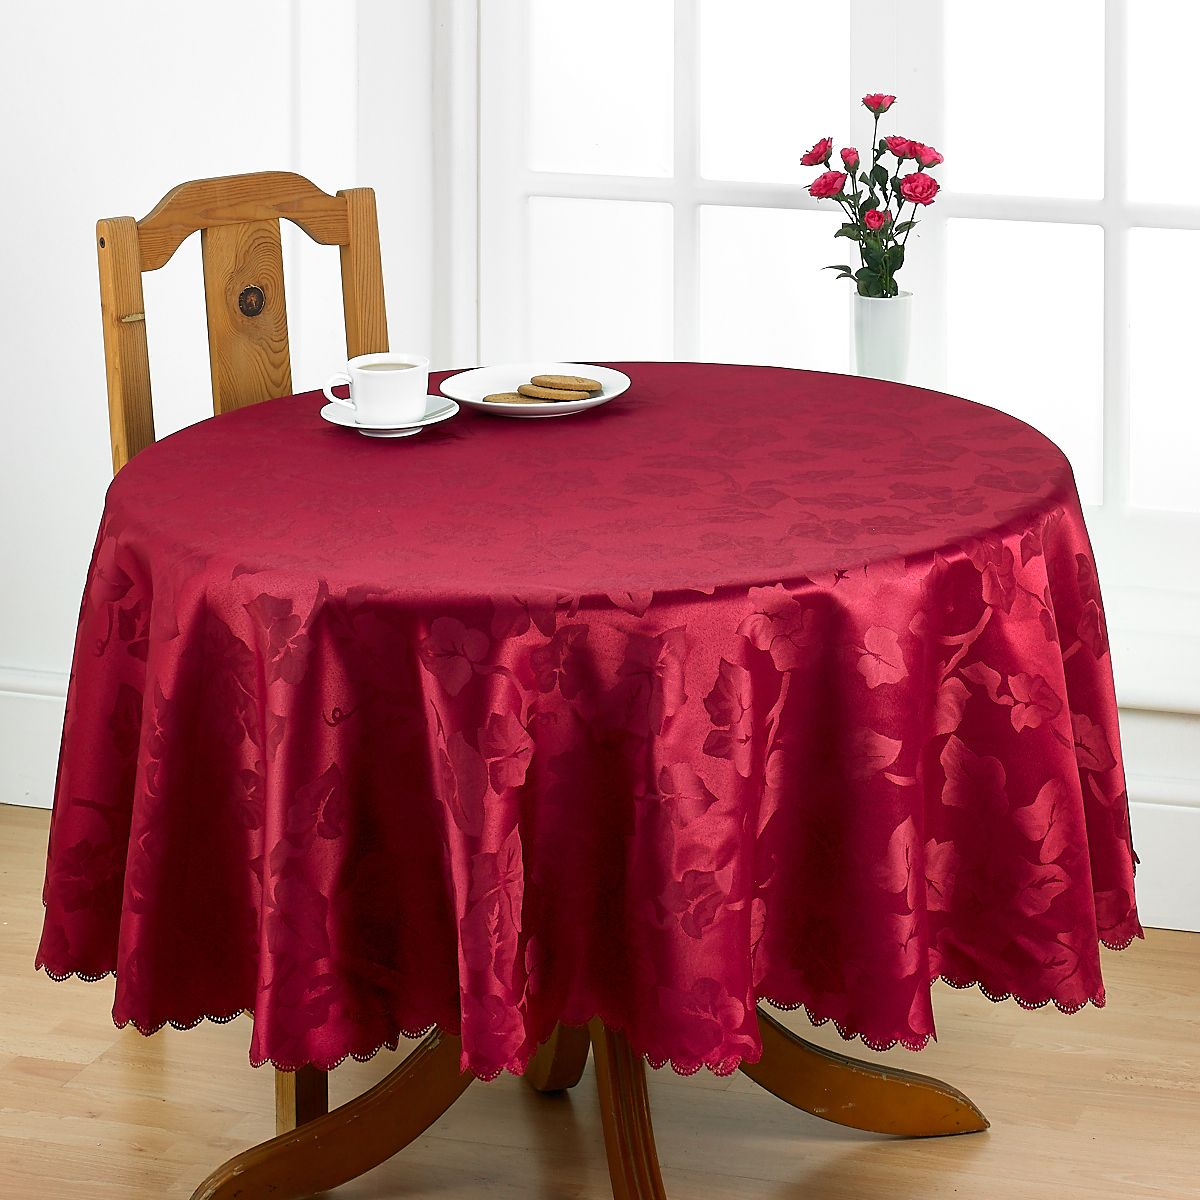 Pin By Betterdreams On Betterdreams Italian Al Fresco Pvc Wipe Clean Gingham Check Polka Dot Easy Care Damask Scalloped Edged Table Linen Table Cloths Table Cloth Table Linens Linen